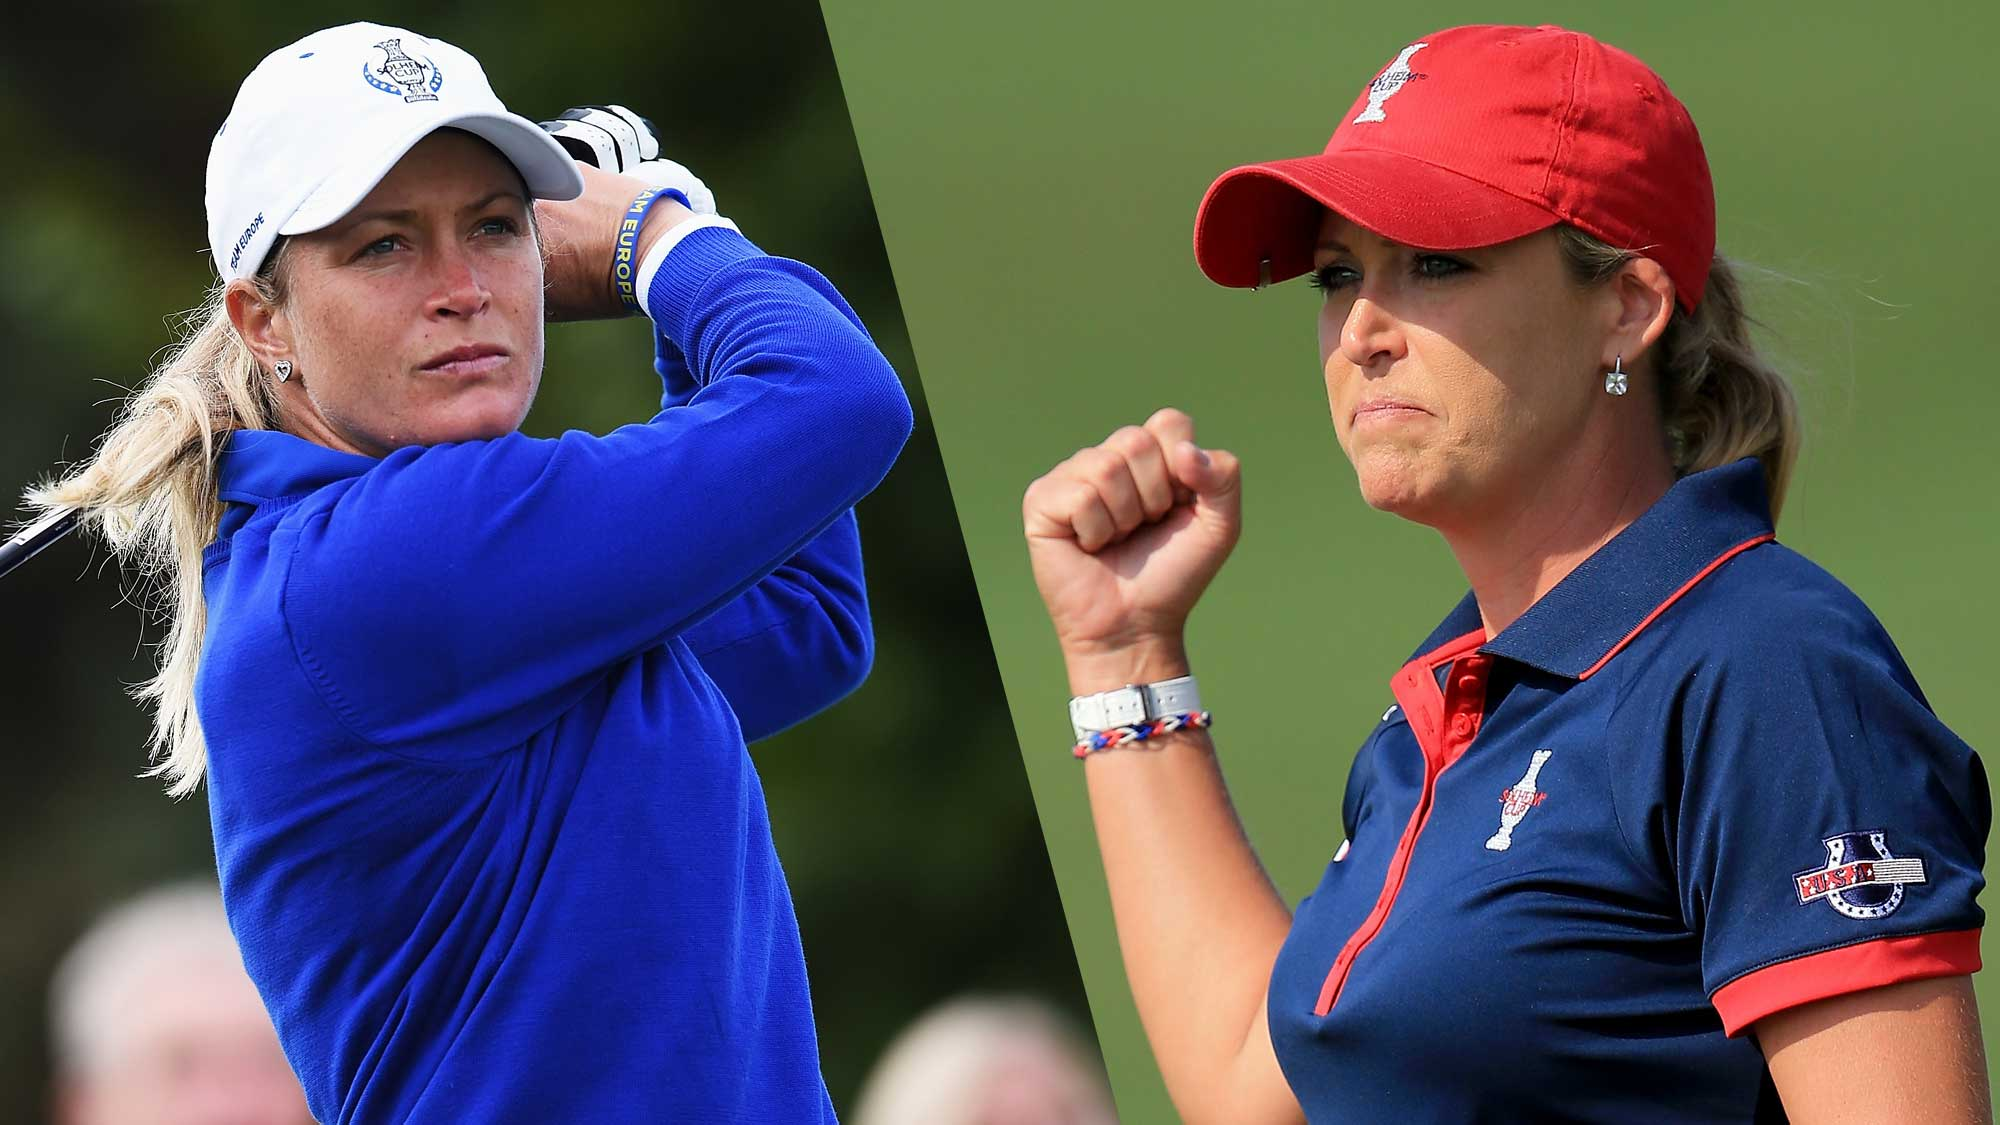 Will the 2017 Solheim Cup be a Record-Breaking Year for Kerr and Pettersen?